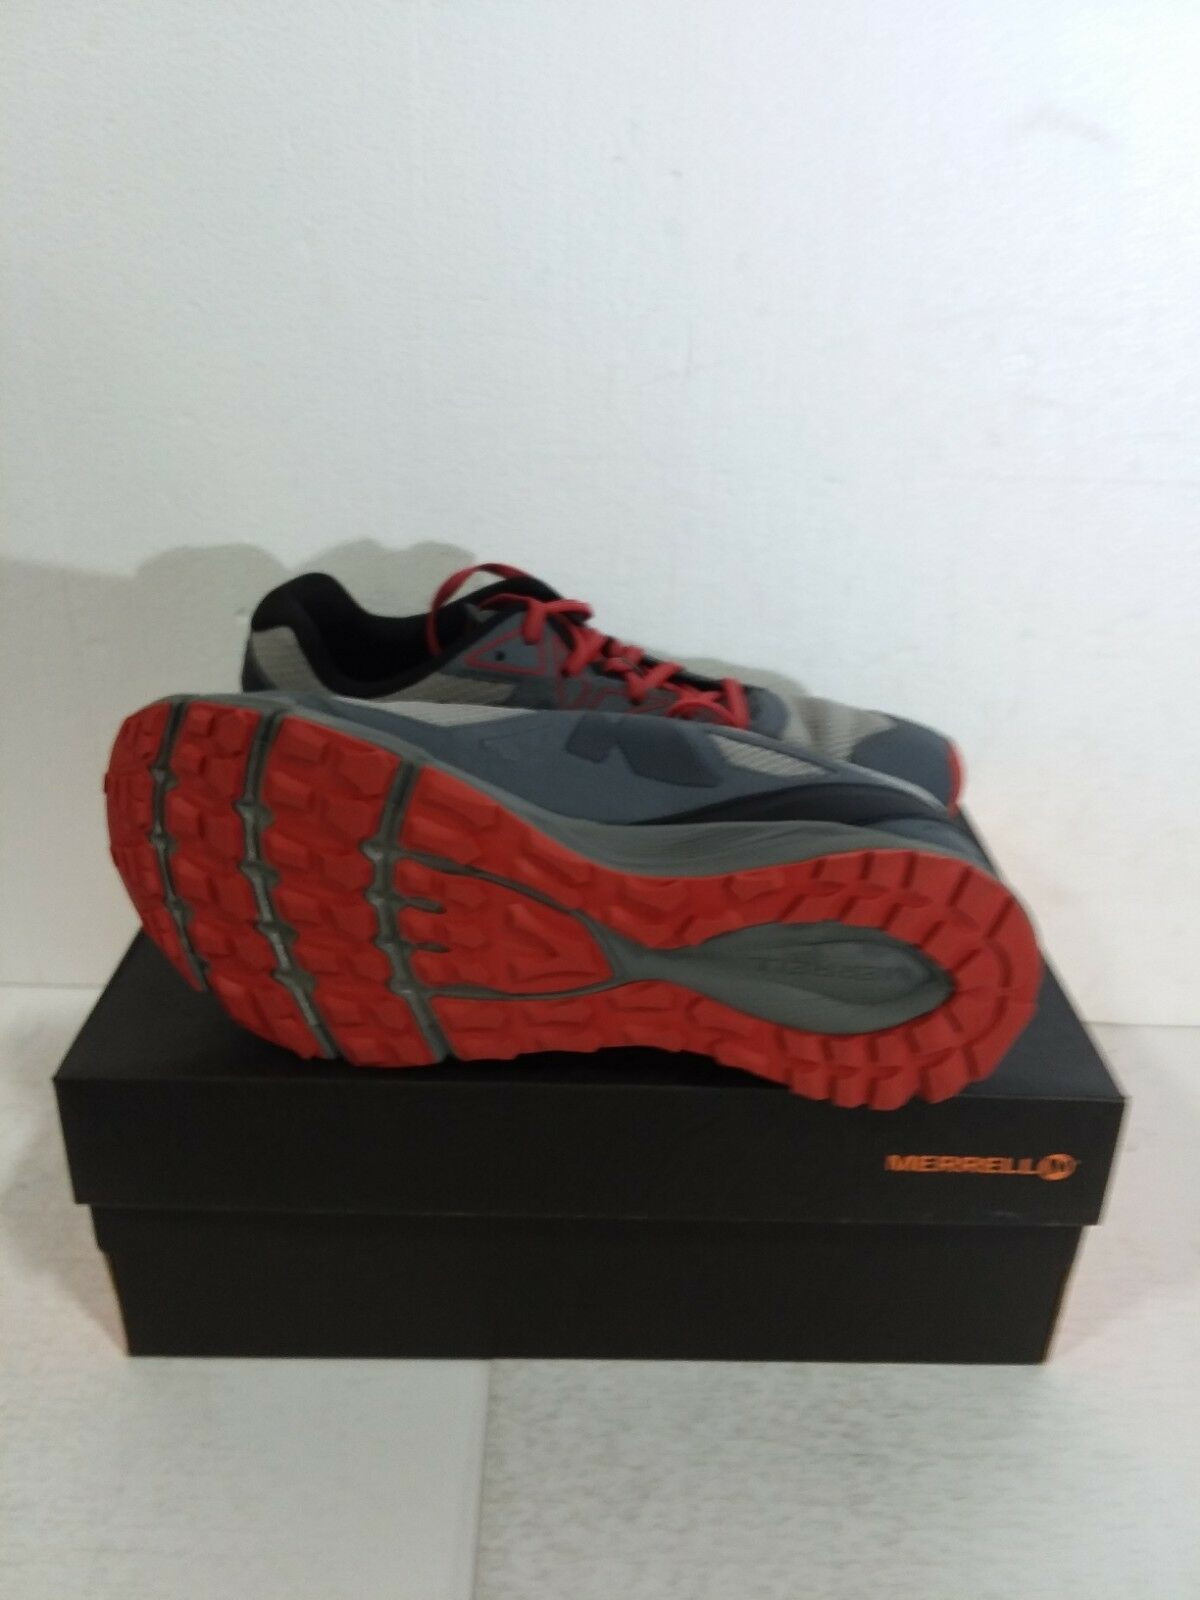 Merrell Mens Agility Fusion Flex Trail Shoes, Paloma, Mens Size 9.5 M